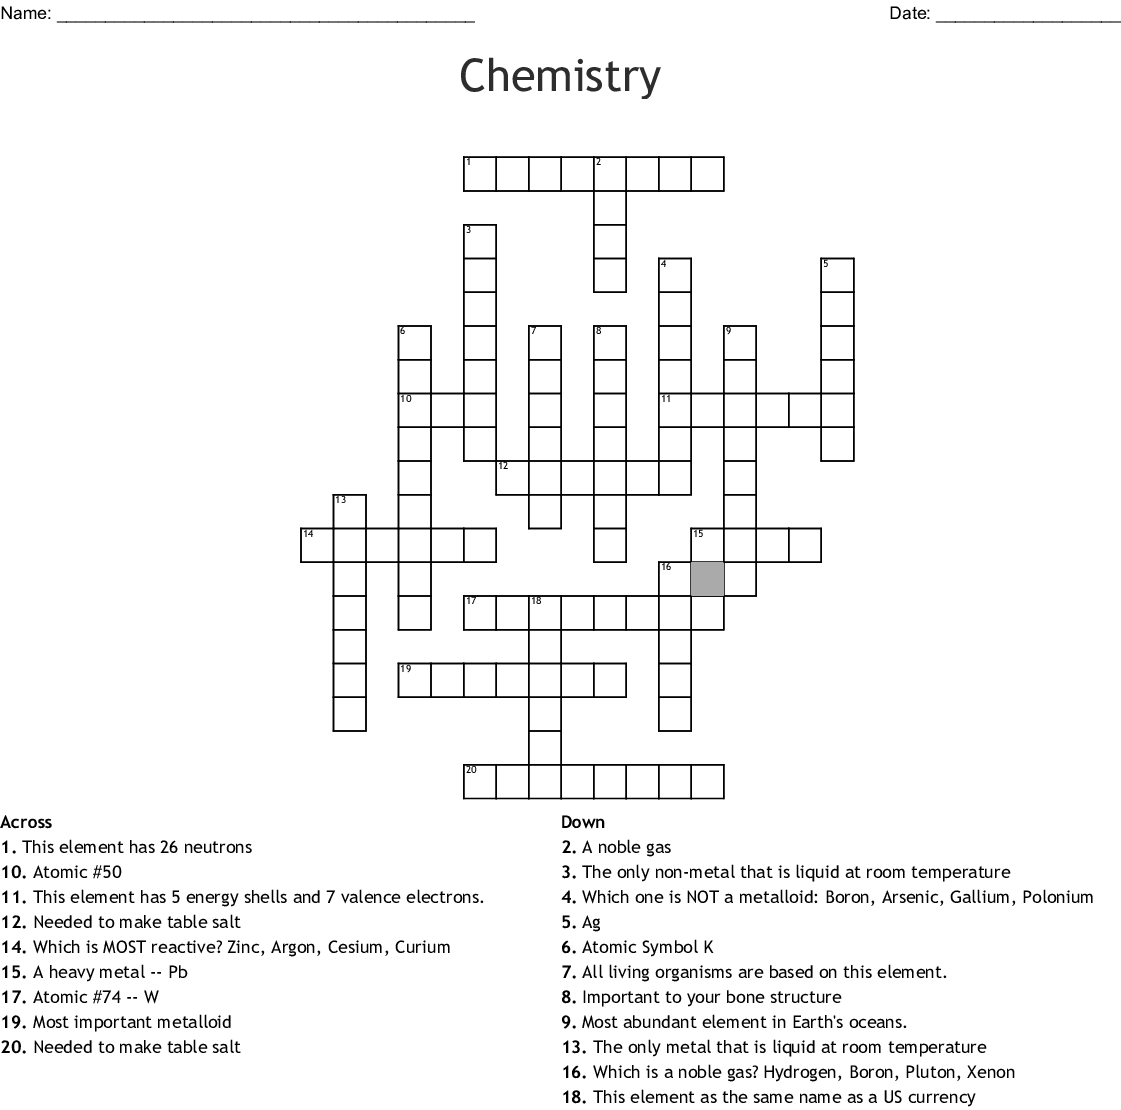 Chemistry Crossword